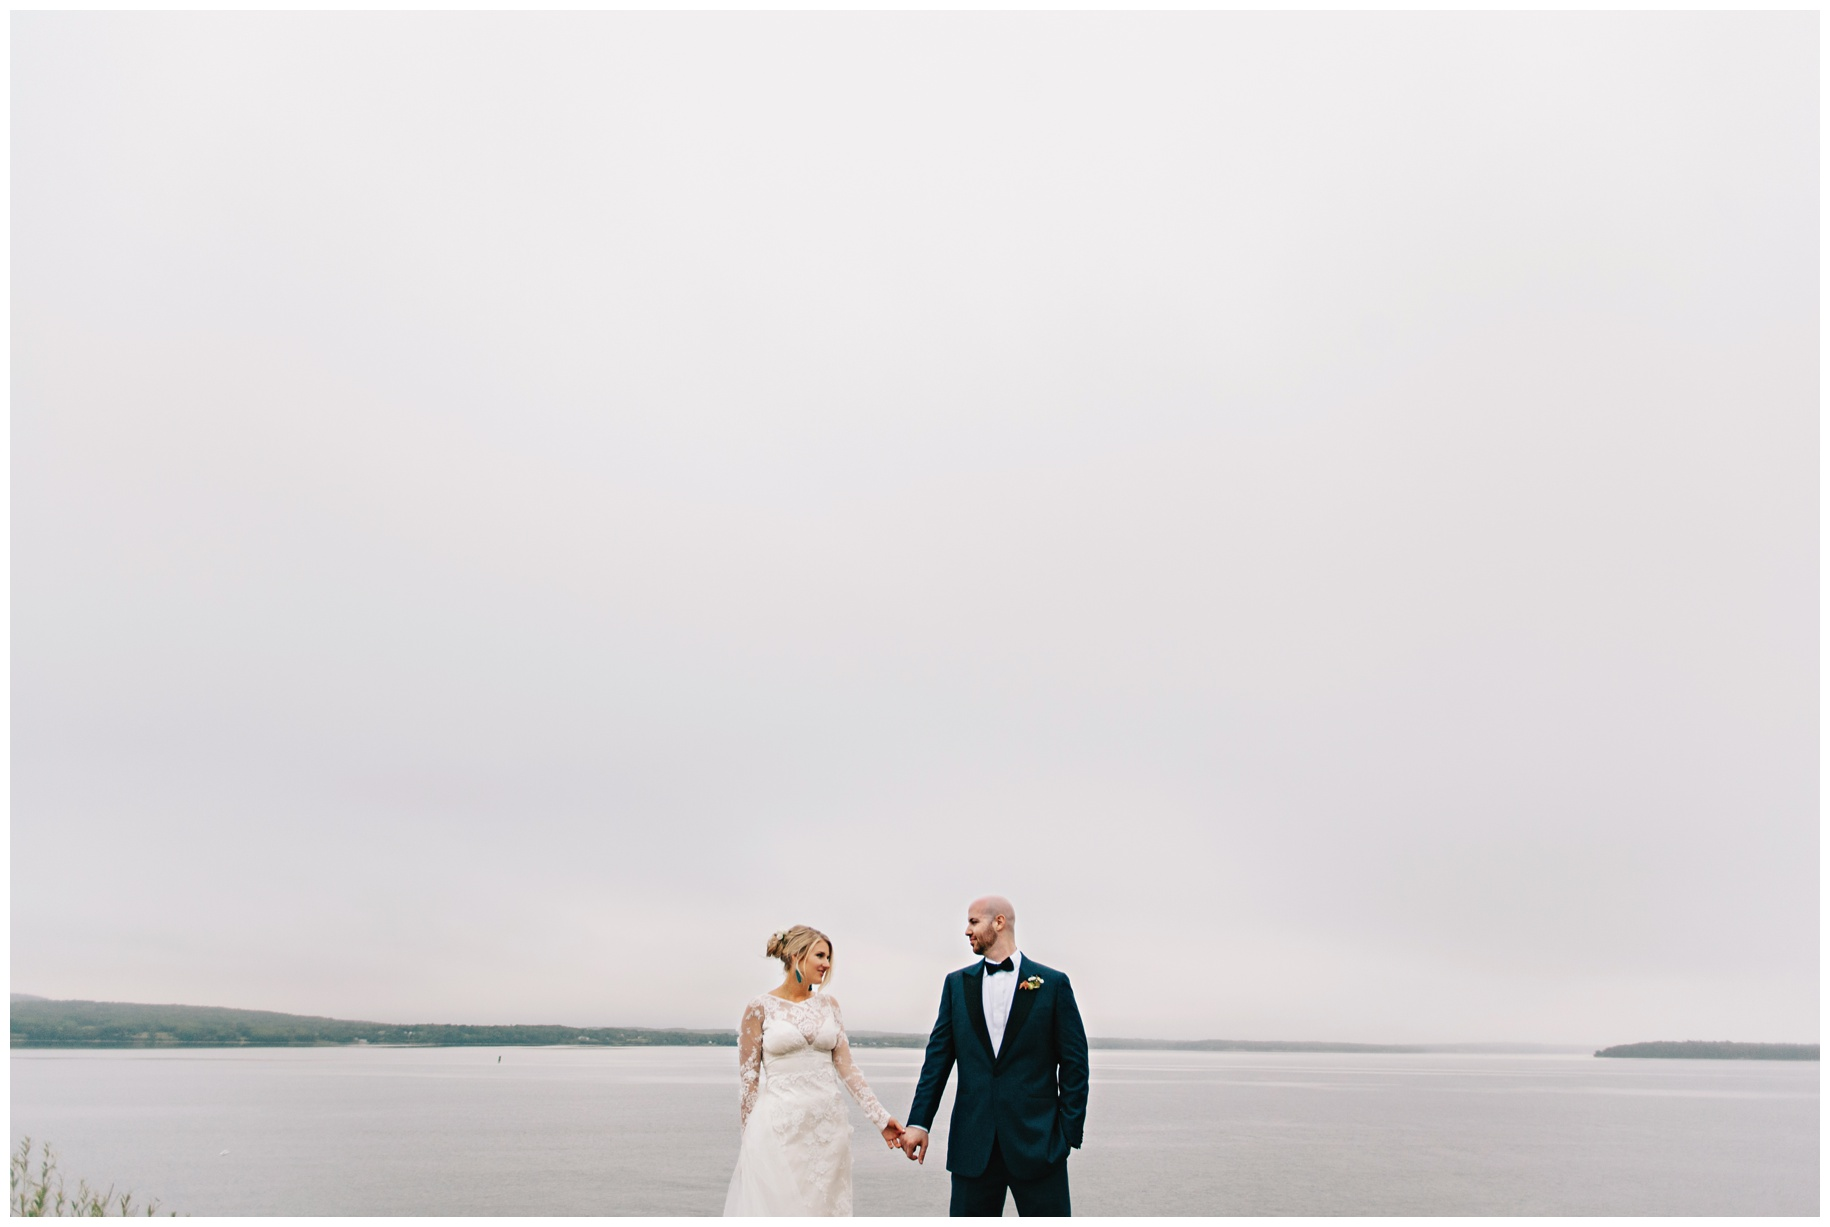 Maine_Wedding_photographer_FrenchsPoint_Stockton_Springs_coast_seaside-028